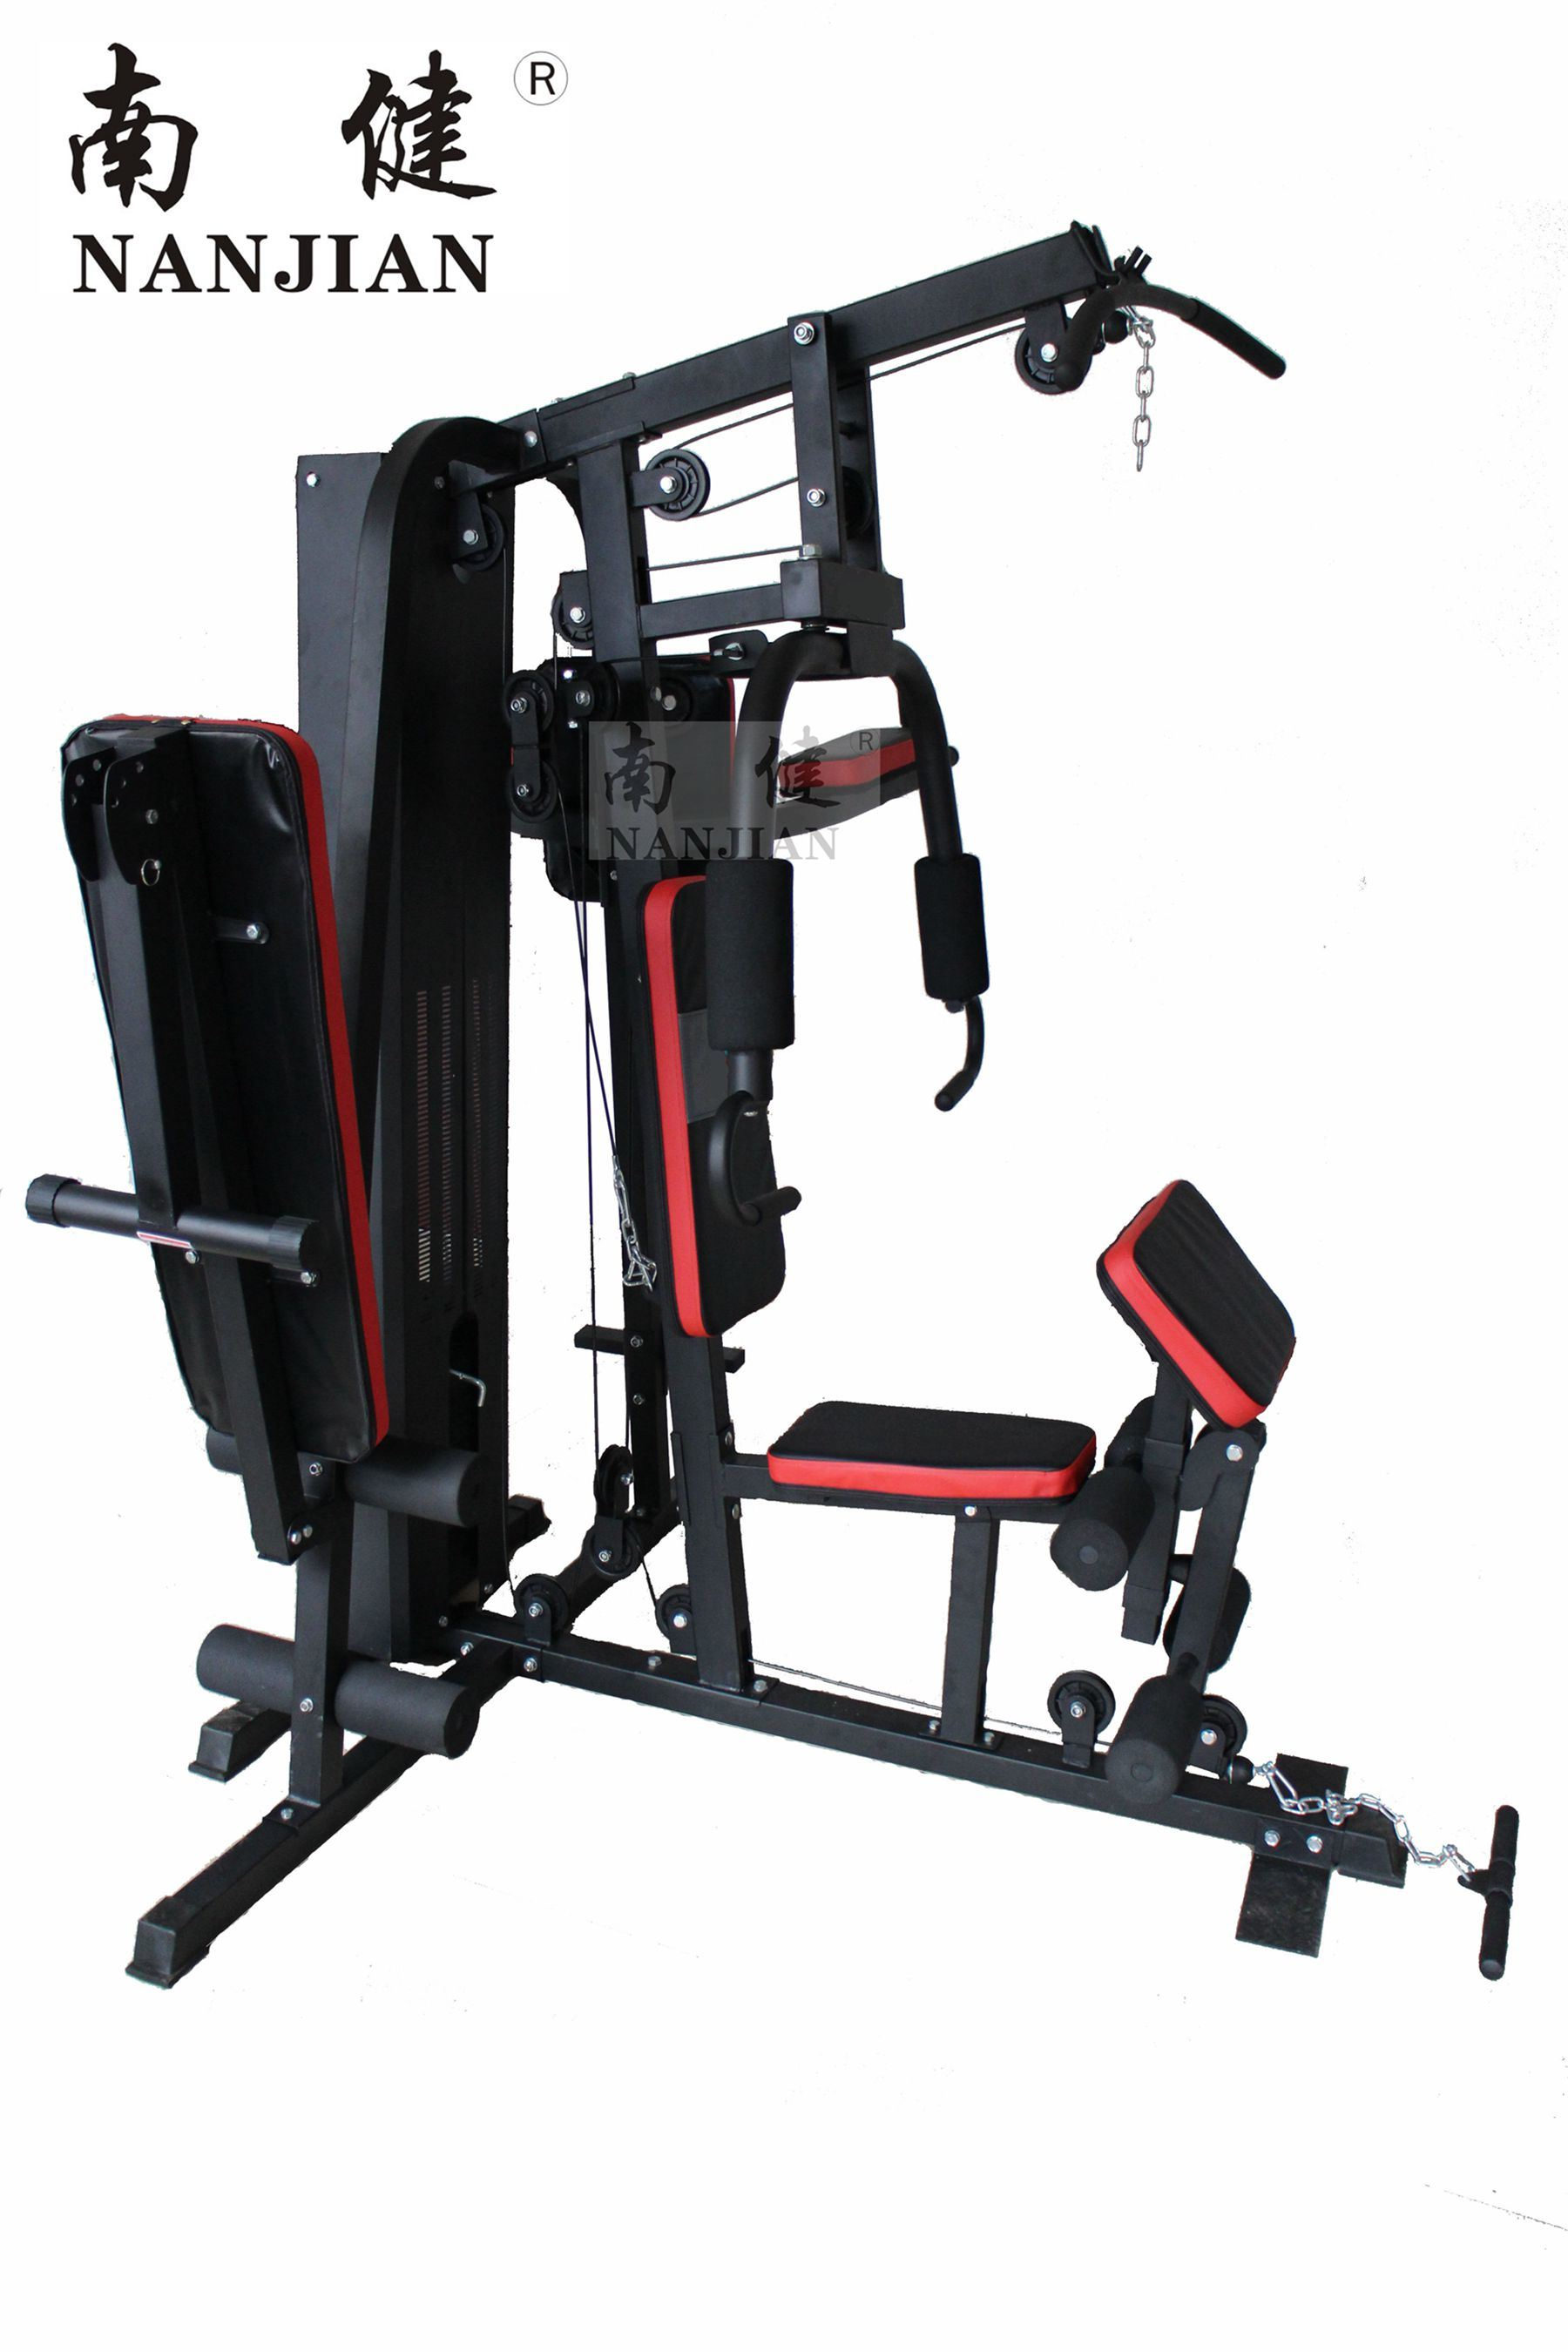 Nanjian Three Station Home Gym/Multi Gym/Home Gym with 150lbs Weight Plate